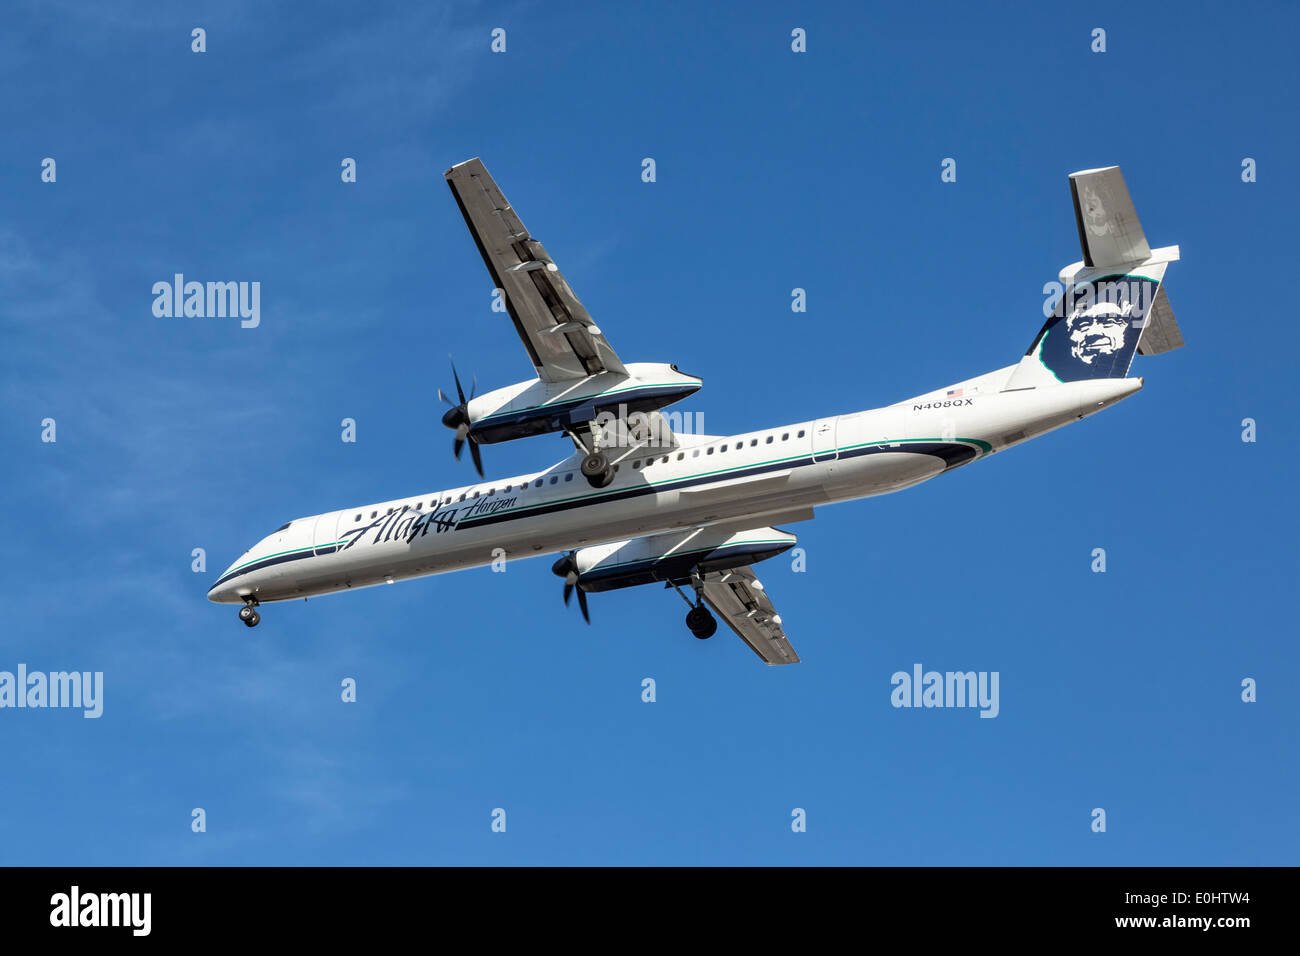 Bombardier Dash 8 of Alaska airlines on final approach - Stock Image